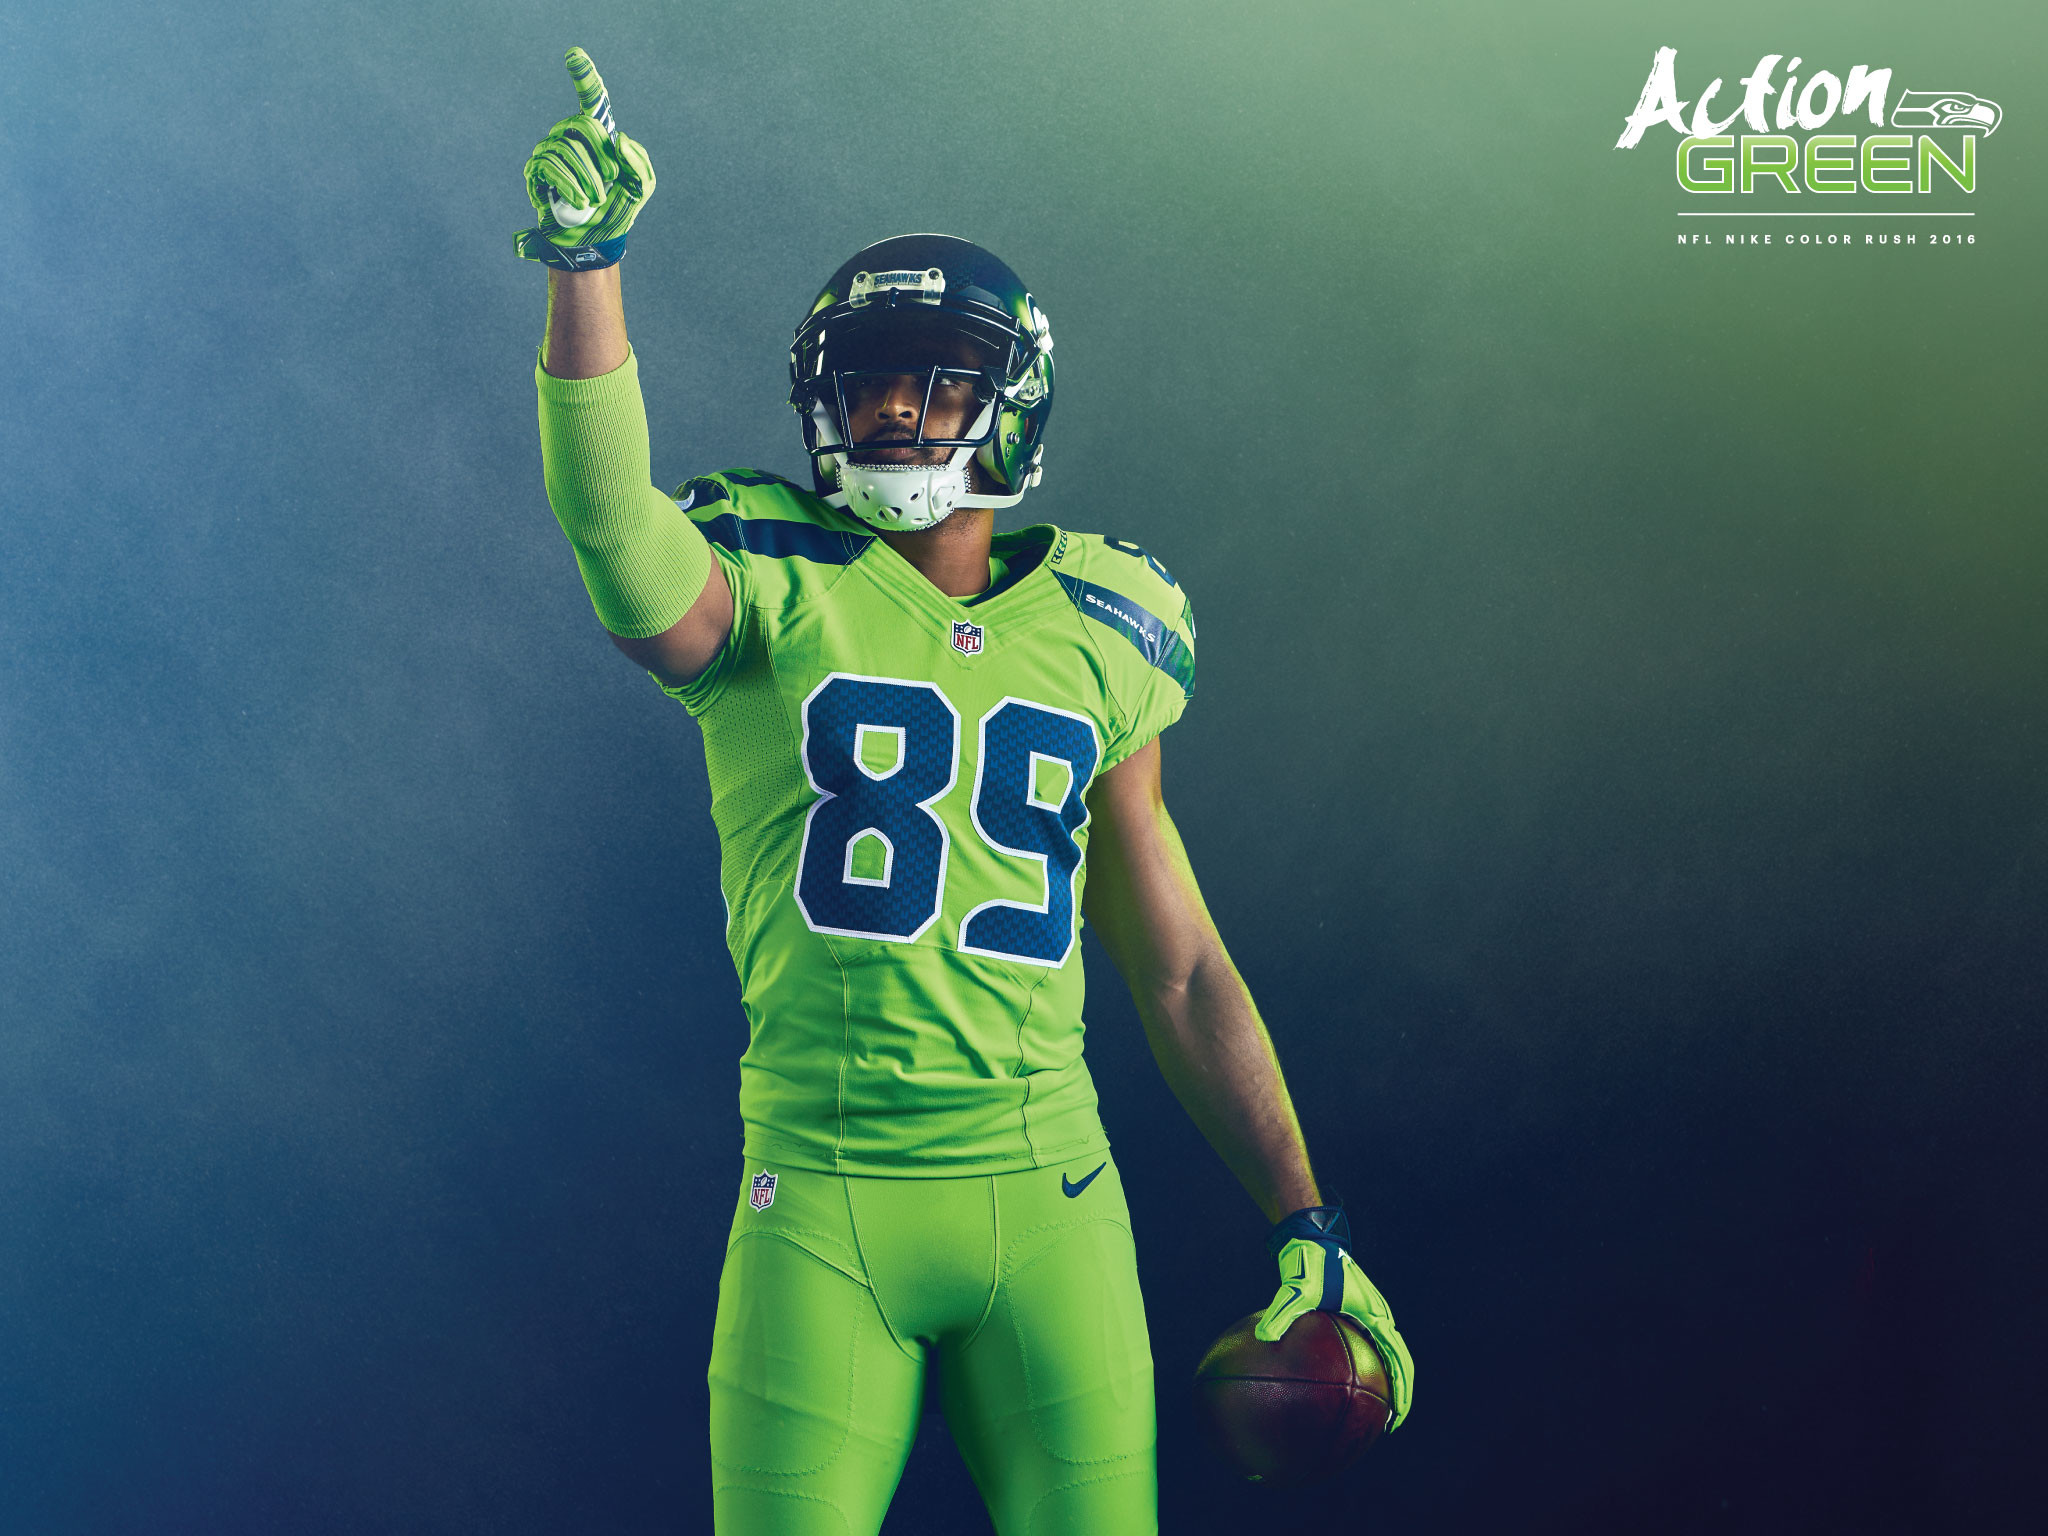 Cool Nfl Wallpapers 74 Images